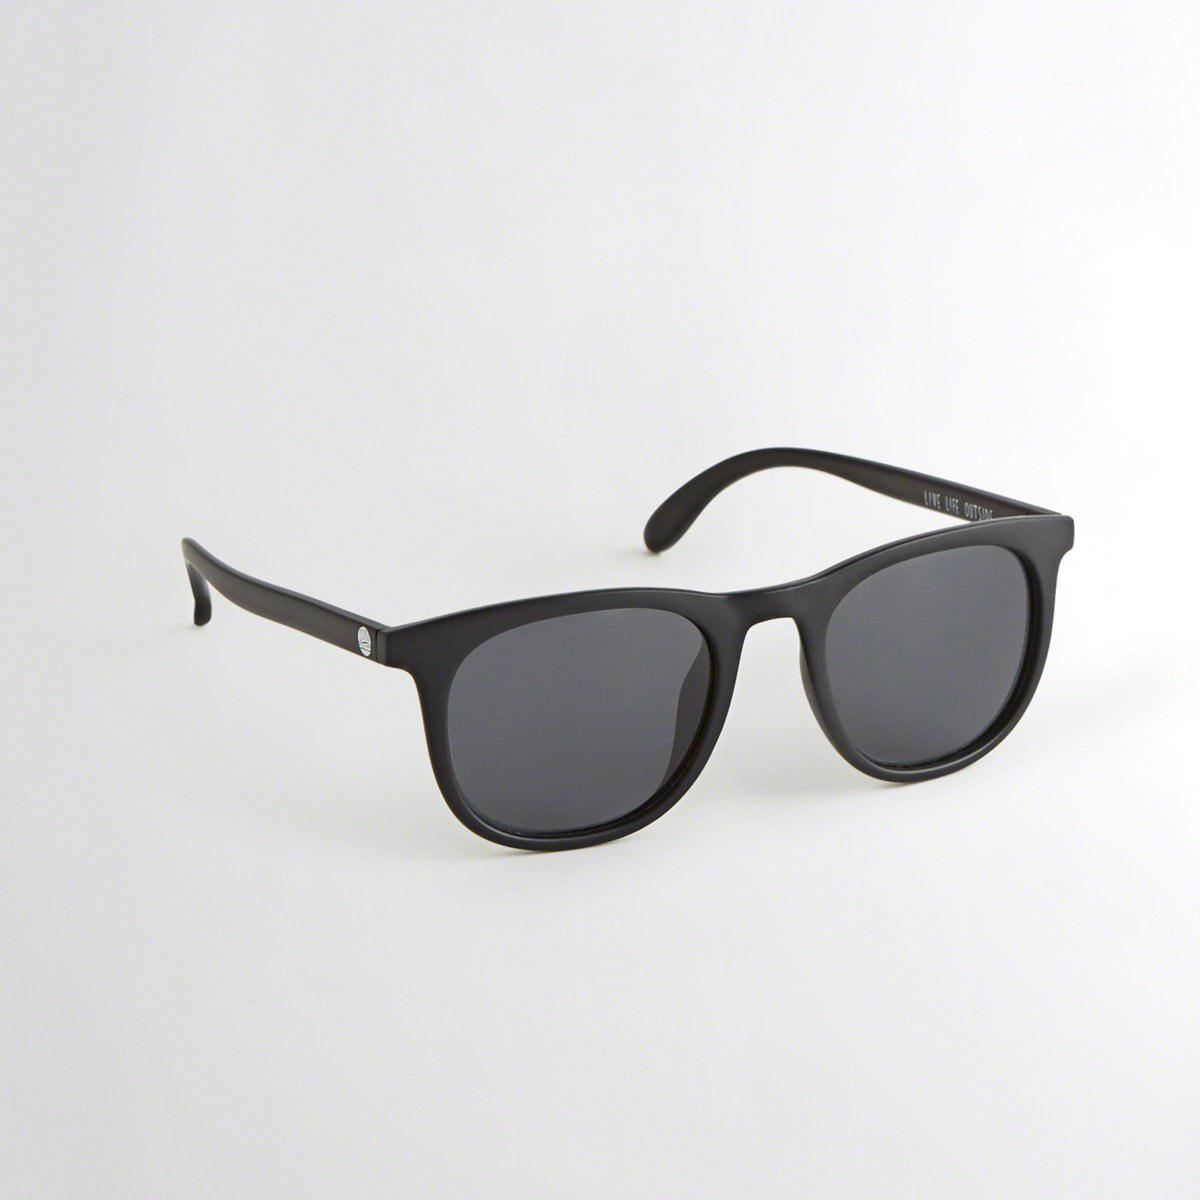 e065e367a2060 Lyst - Hollister Guys Sunski Seacliff Sunglasses From Hollister in Black